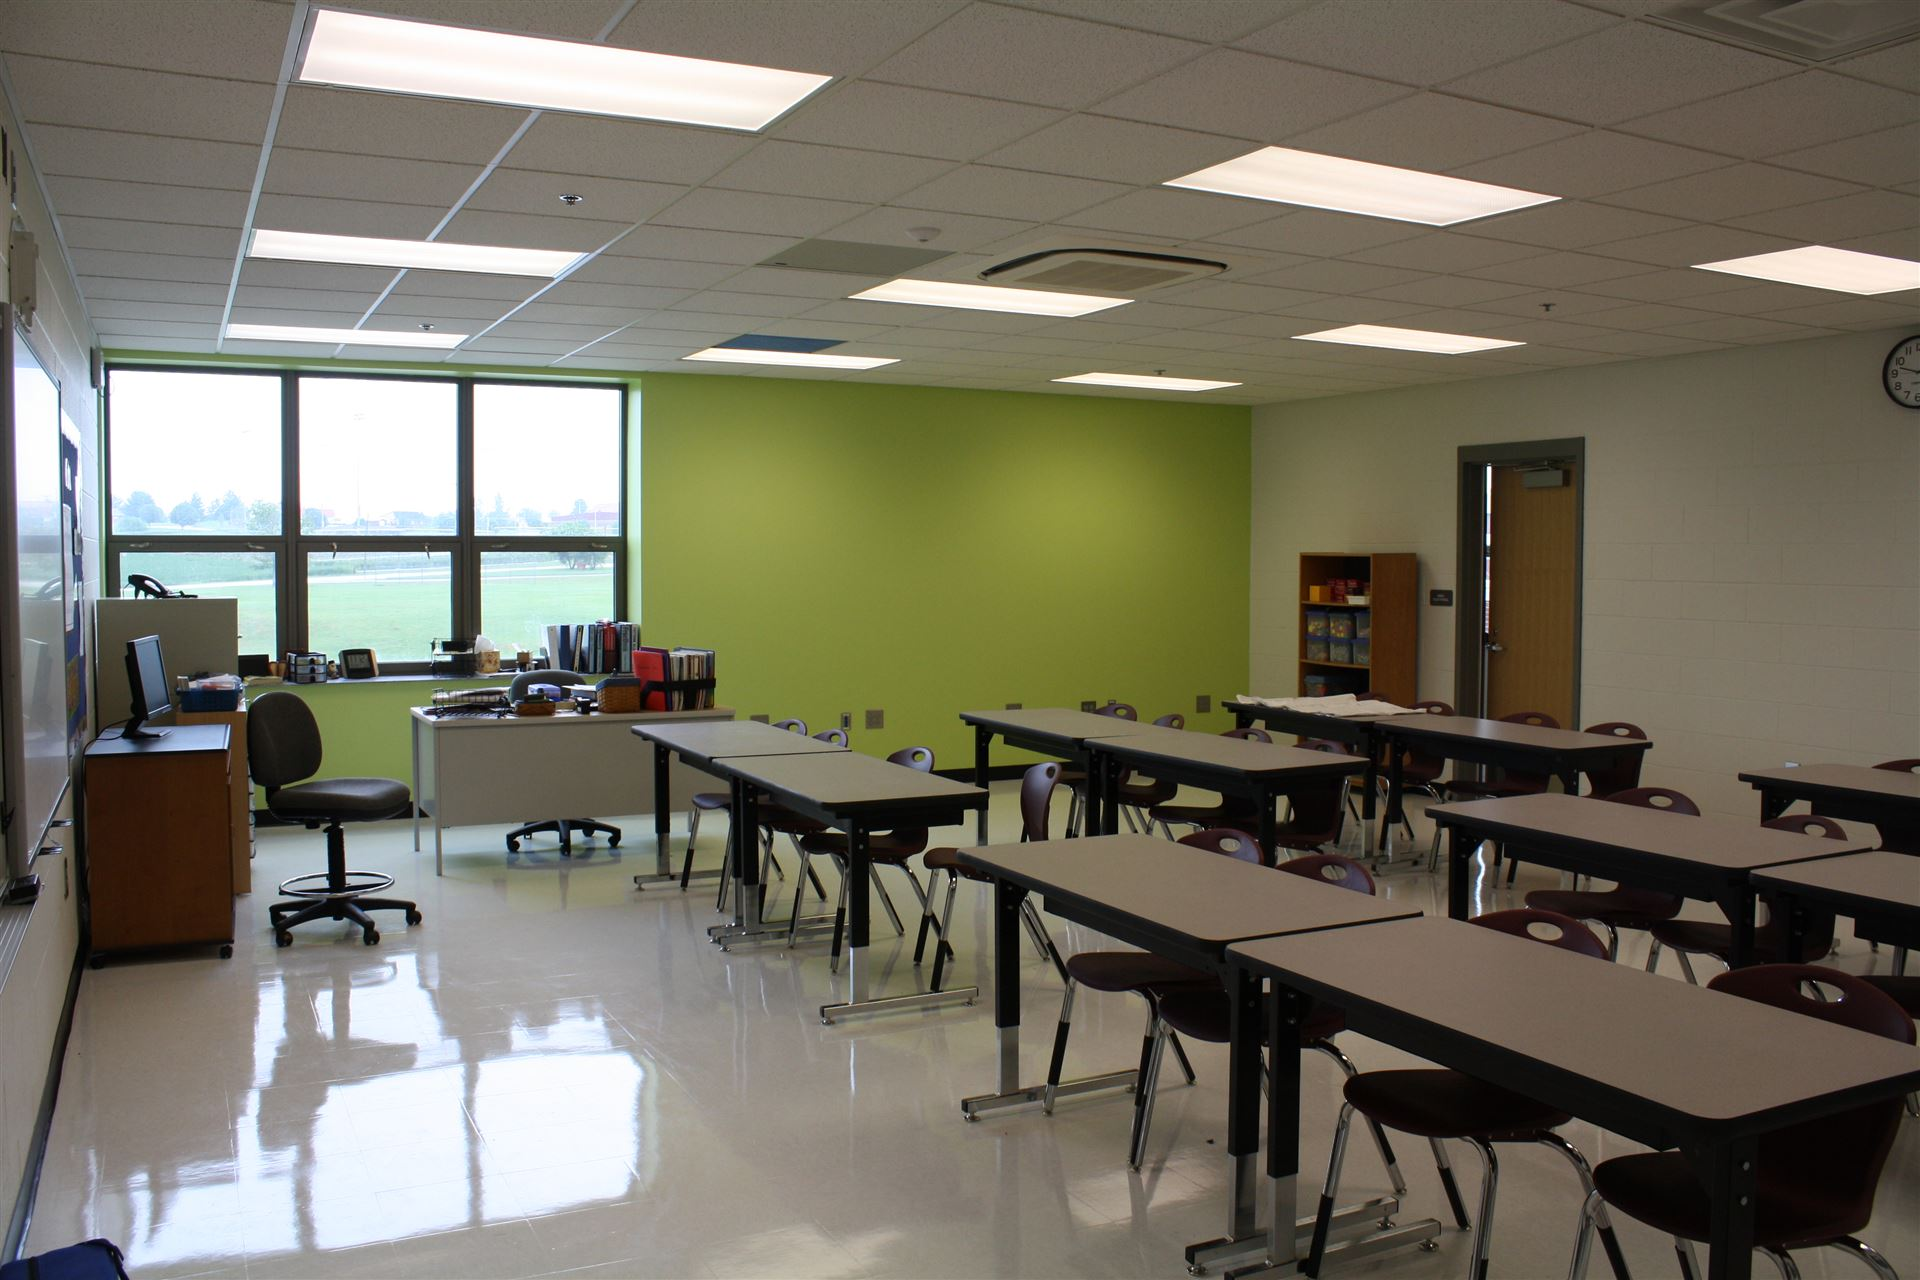 Modern Middle School Classroom ~ Find preparations underway for the start of school on